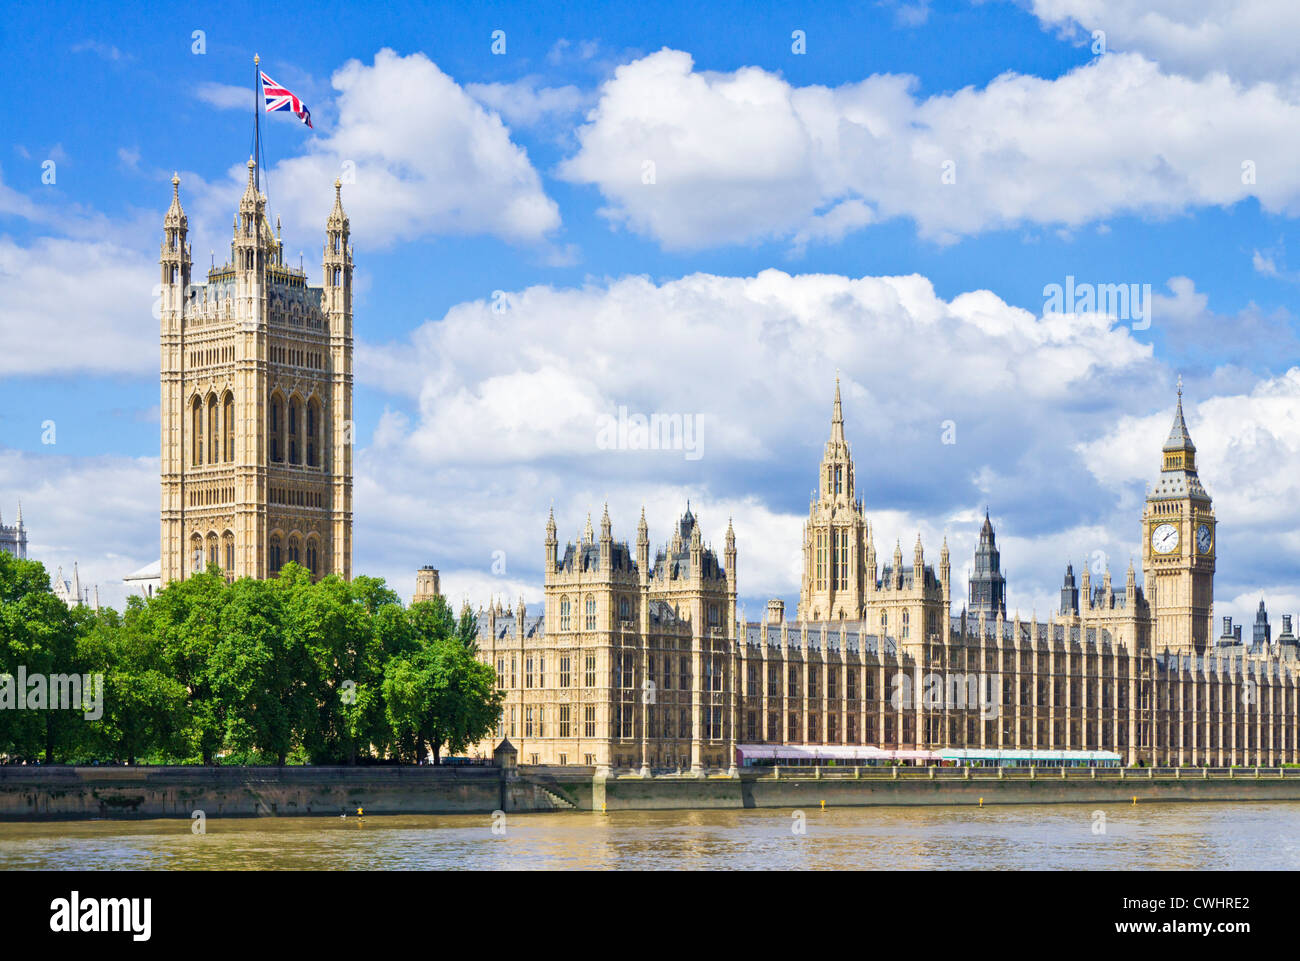 Lo skyline di Londra Parlamento di Londra London Big Ben London City of London city london cityscape Unione battenti Immagini Stock